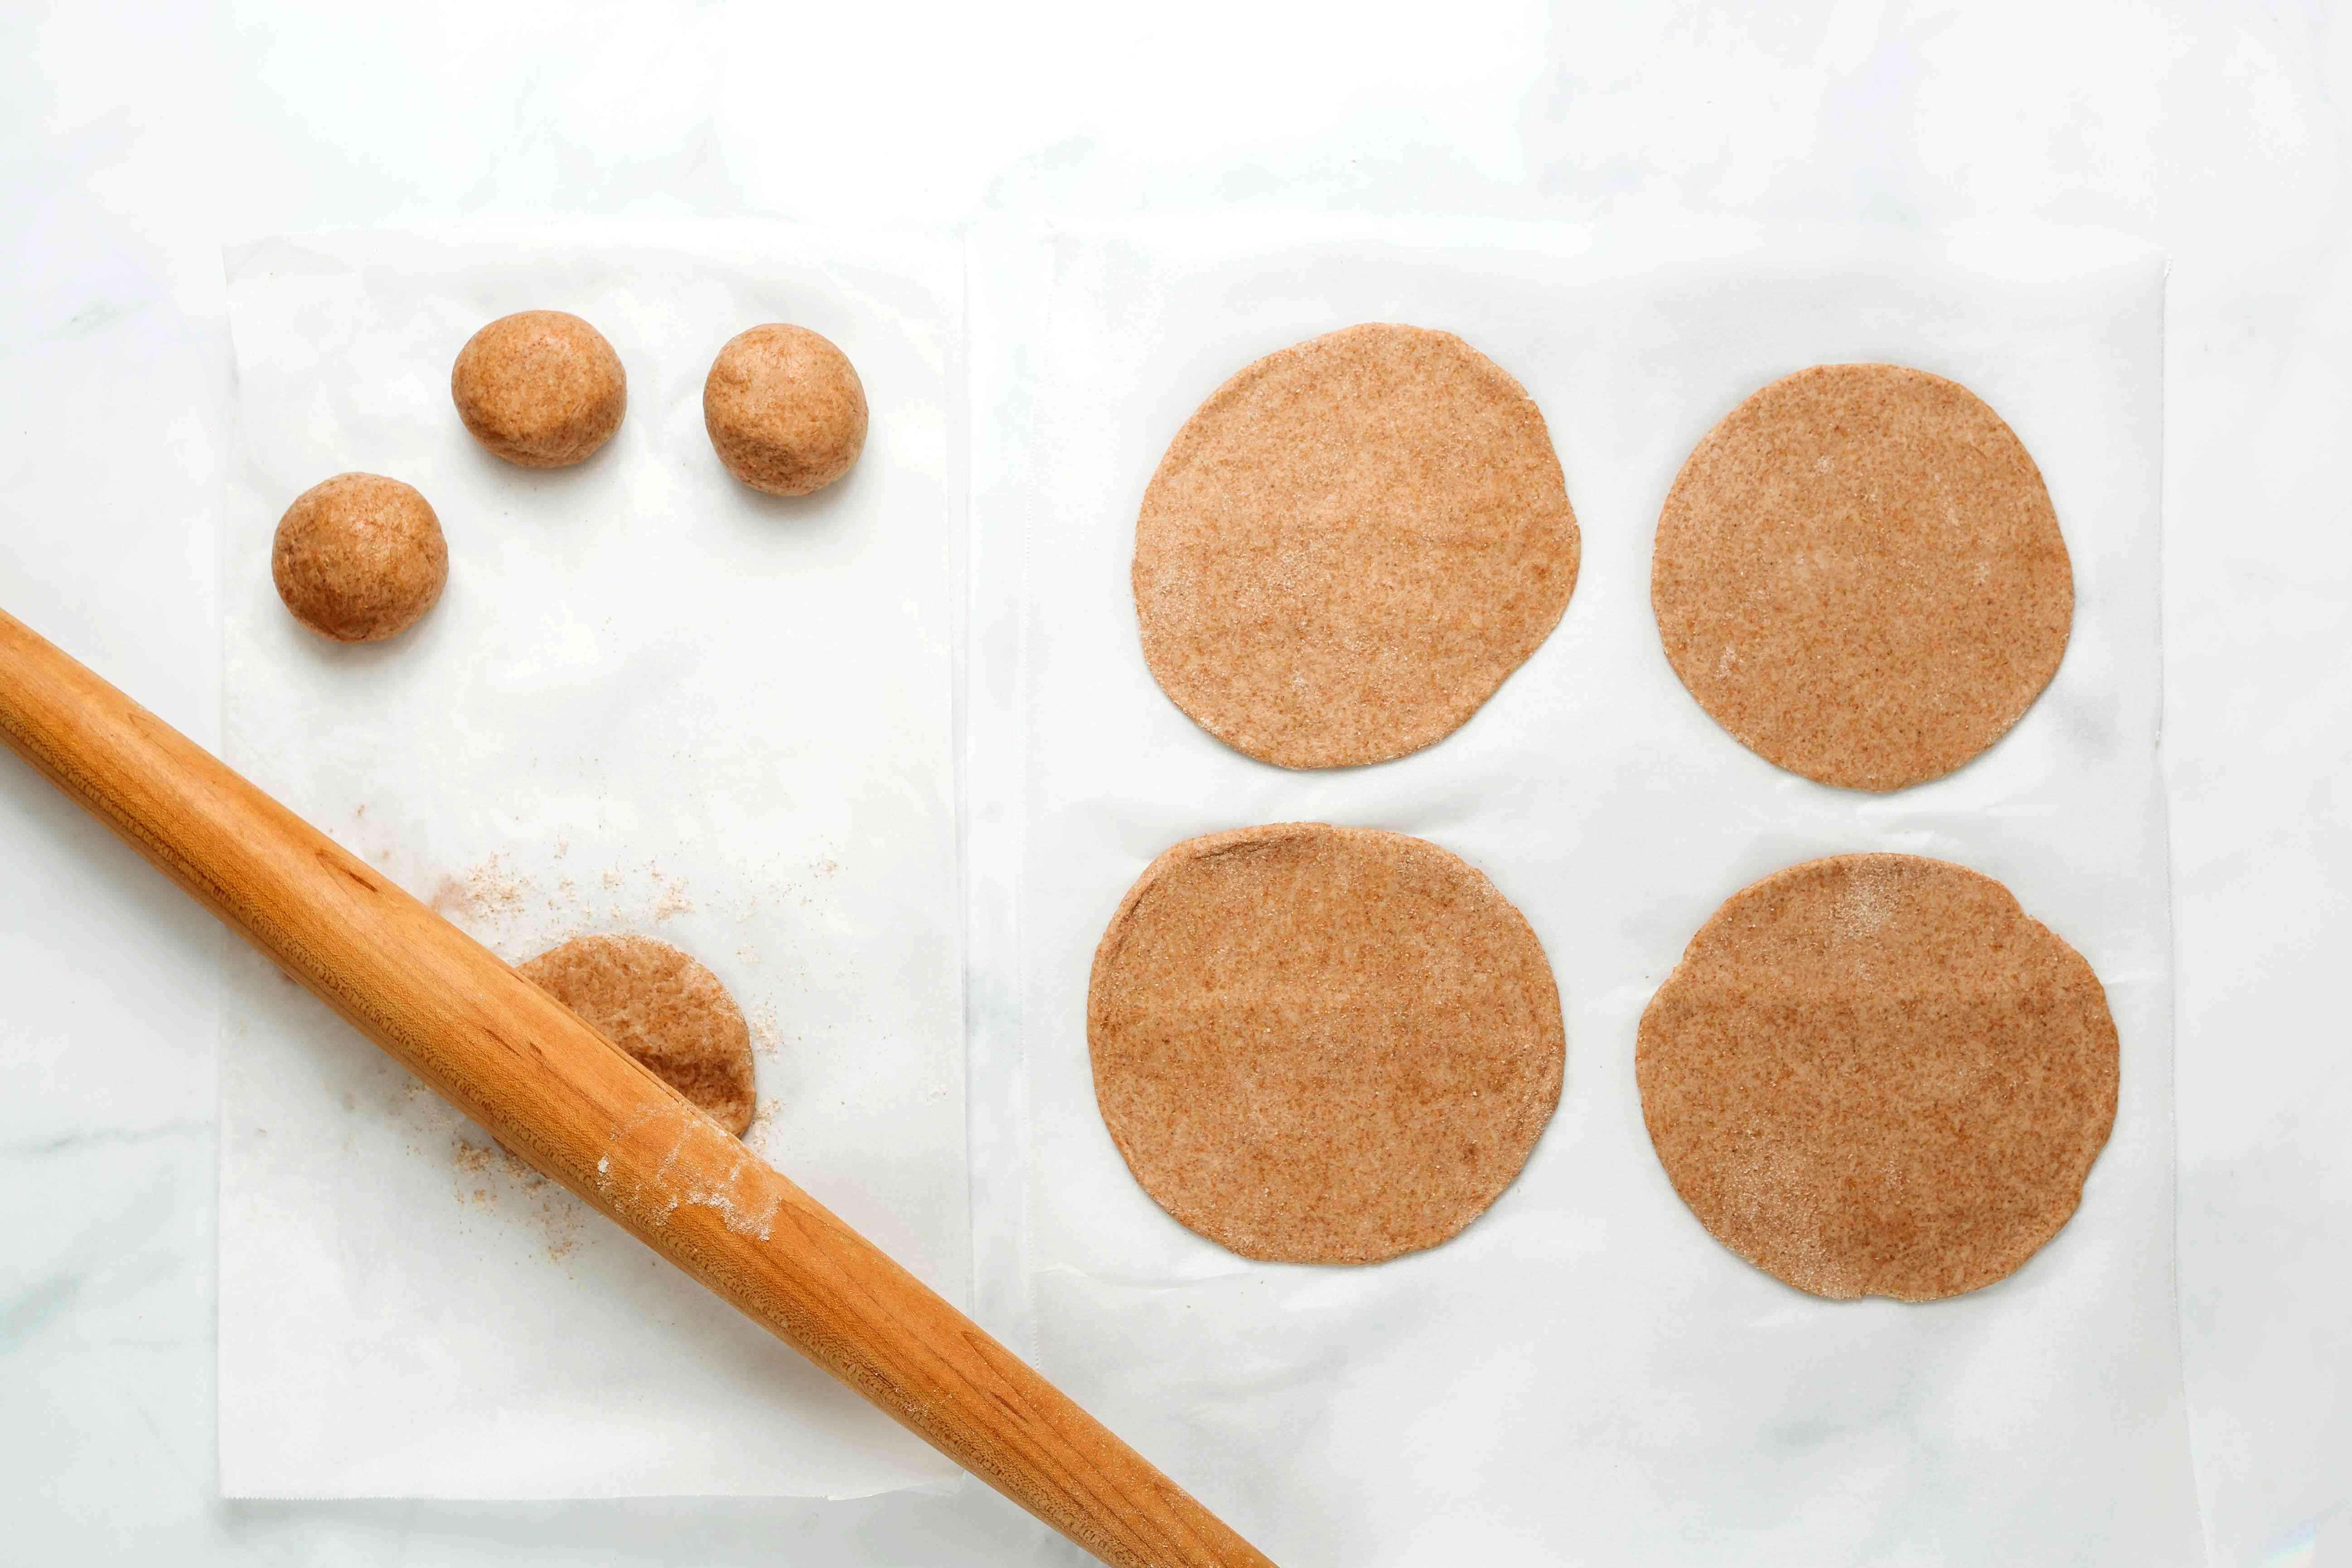 Wheat flour dough balls rolled out into round shapes on parchment paper